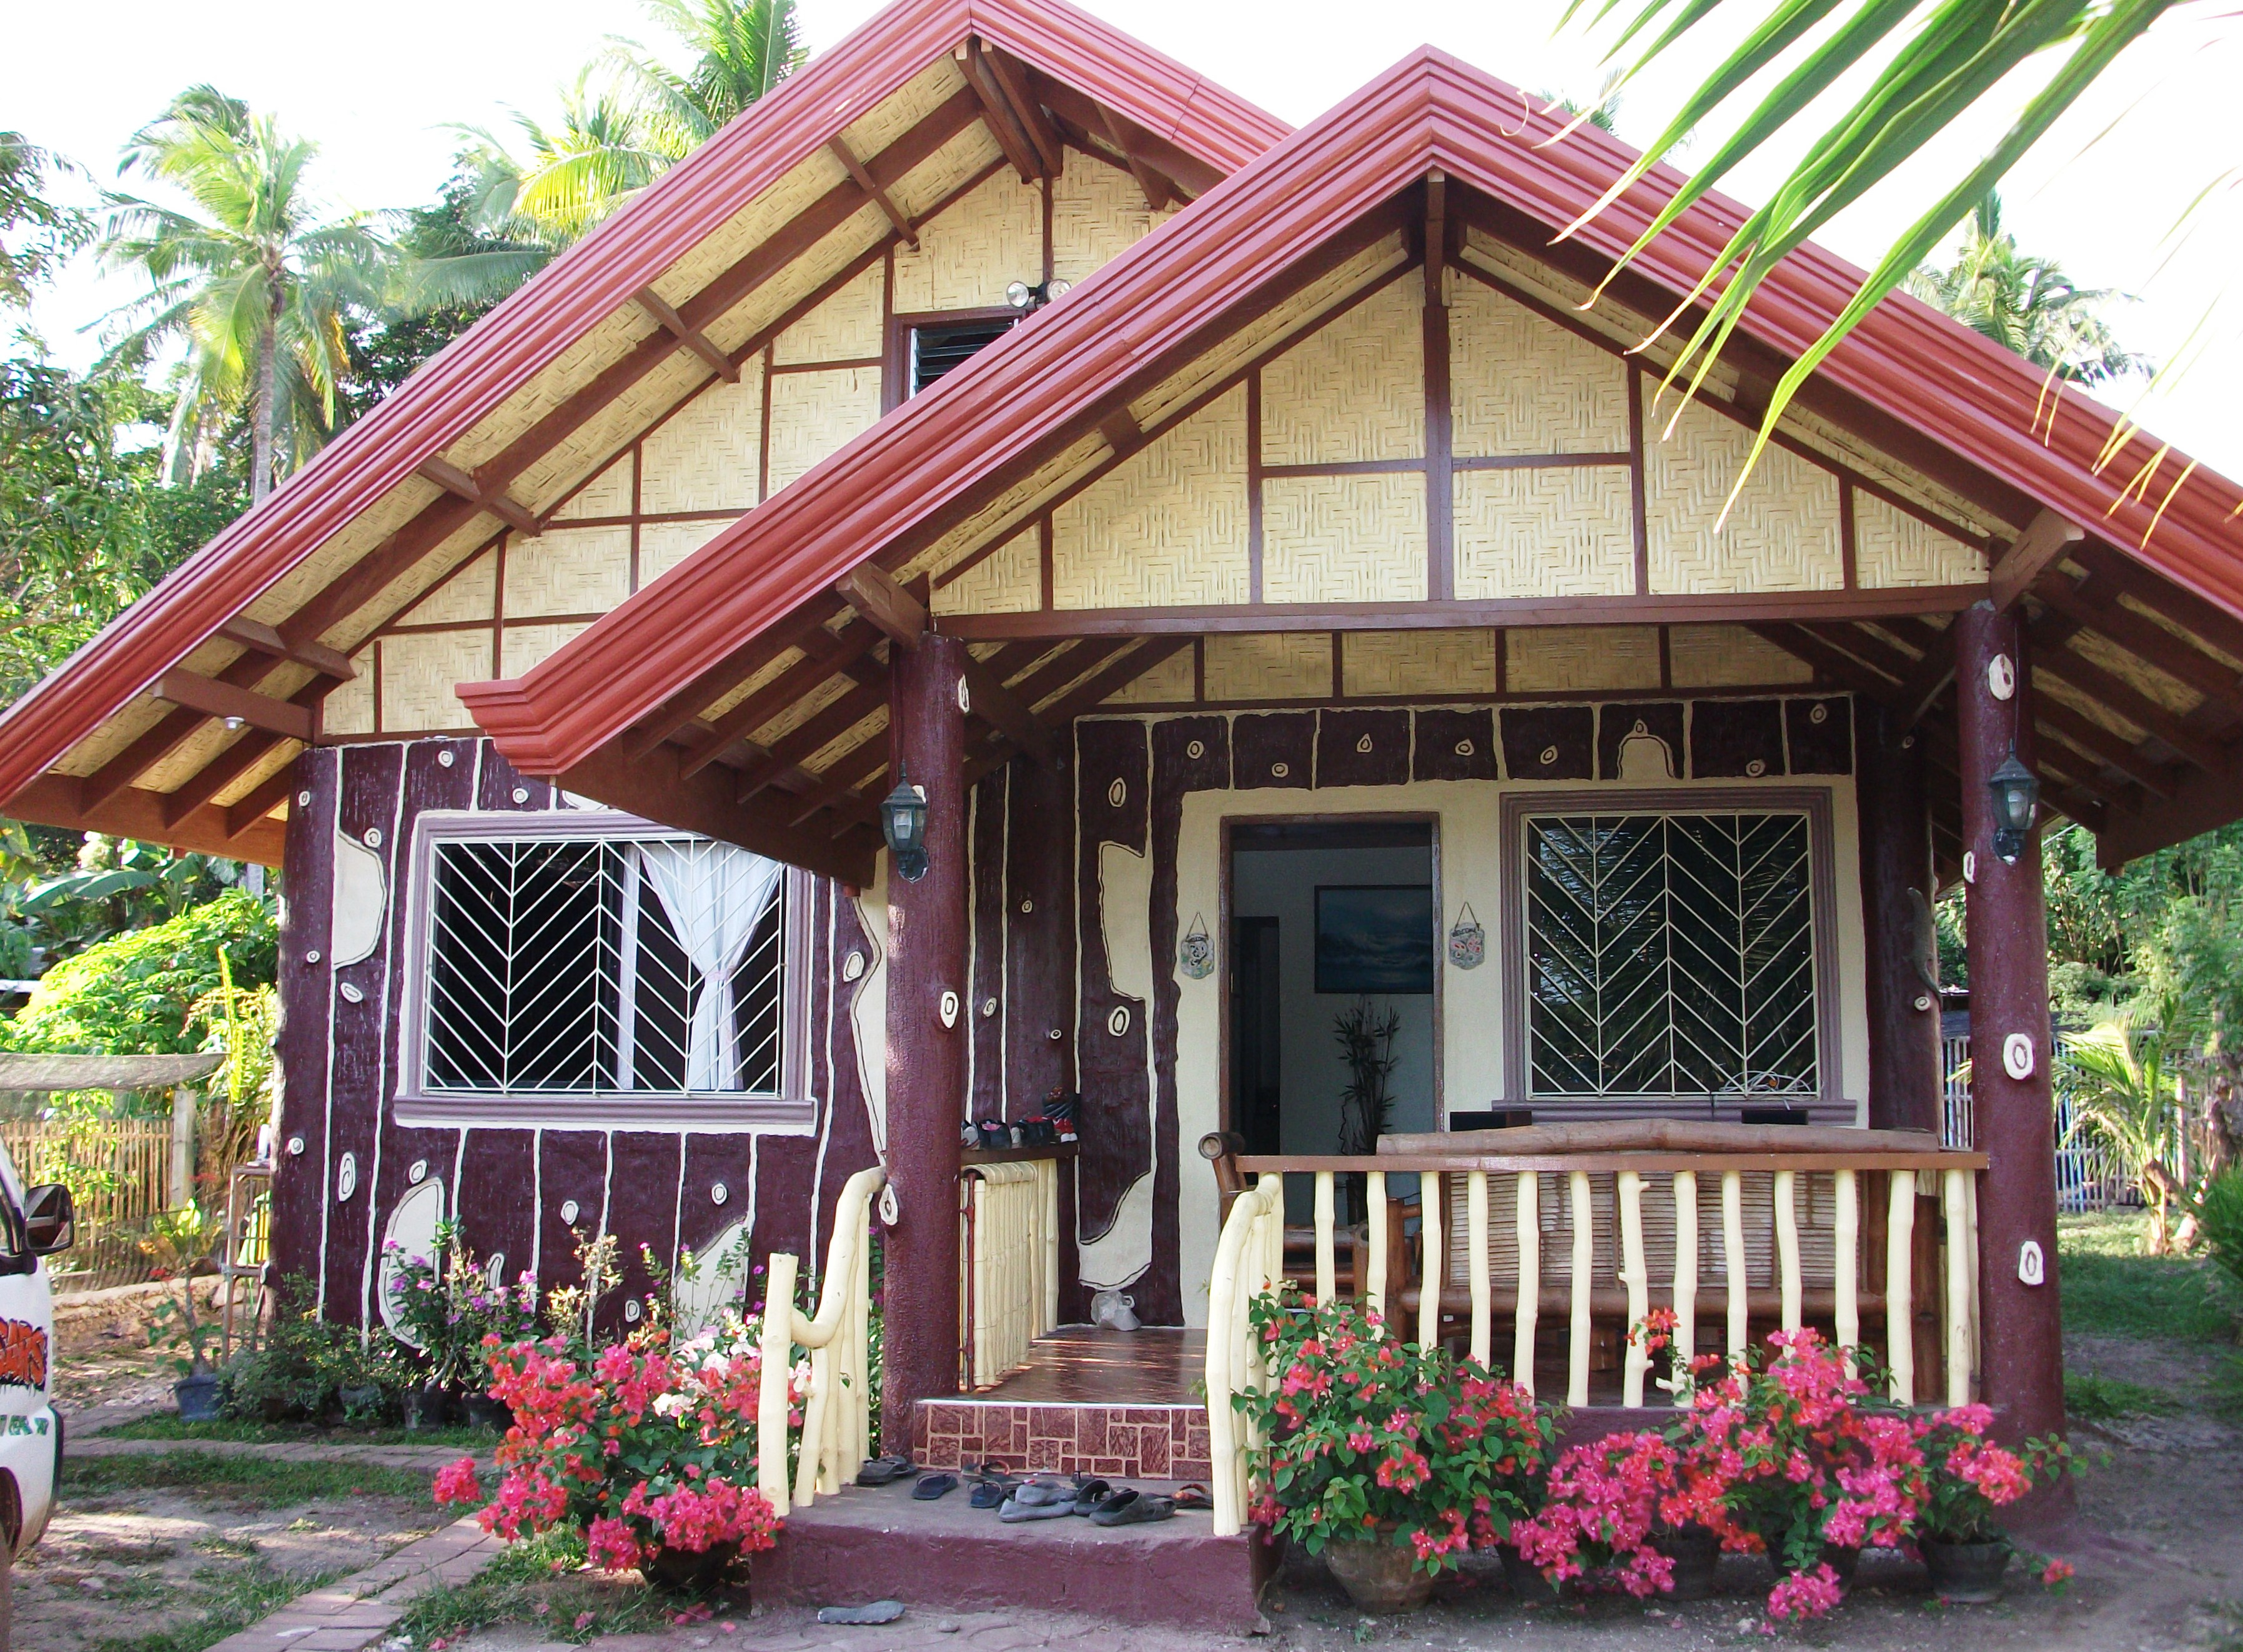 dscf4407 - View Small House Design Bahay Kubo Background